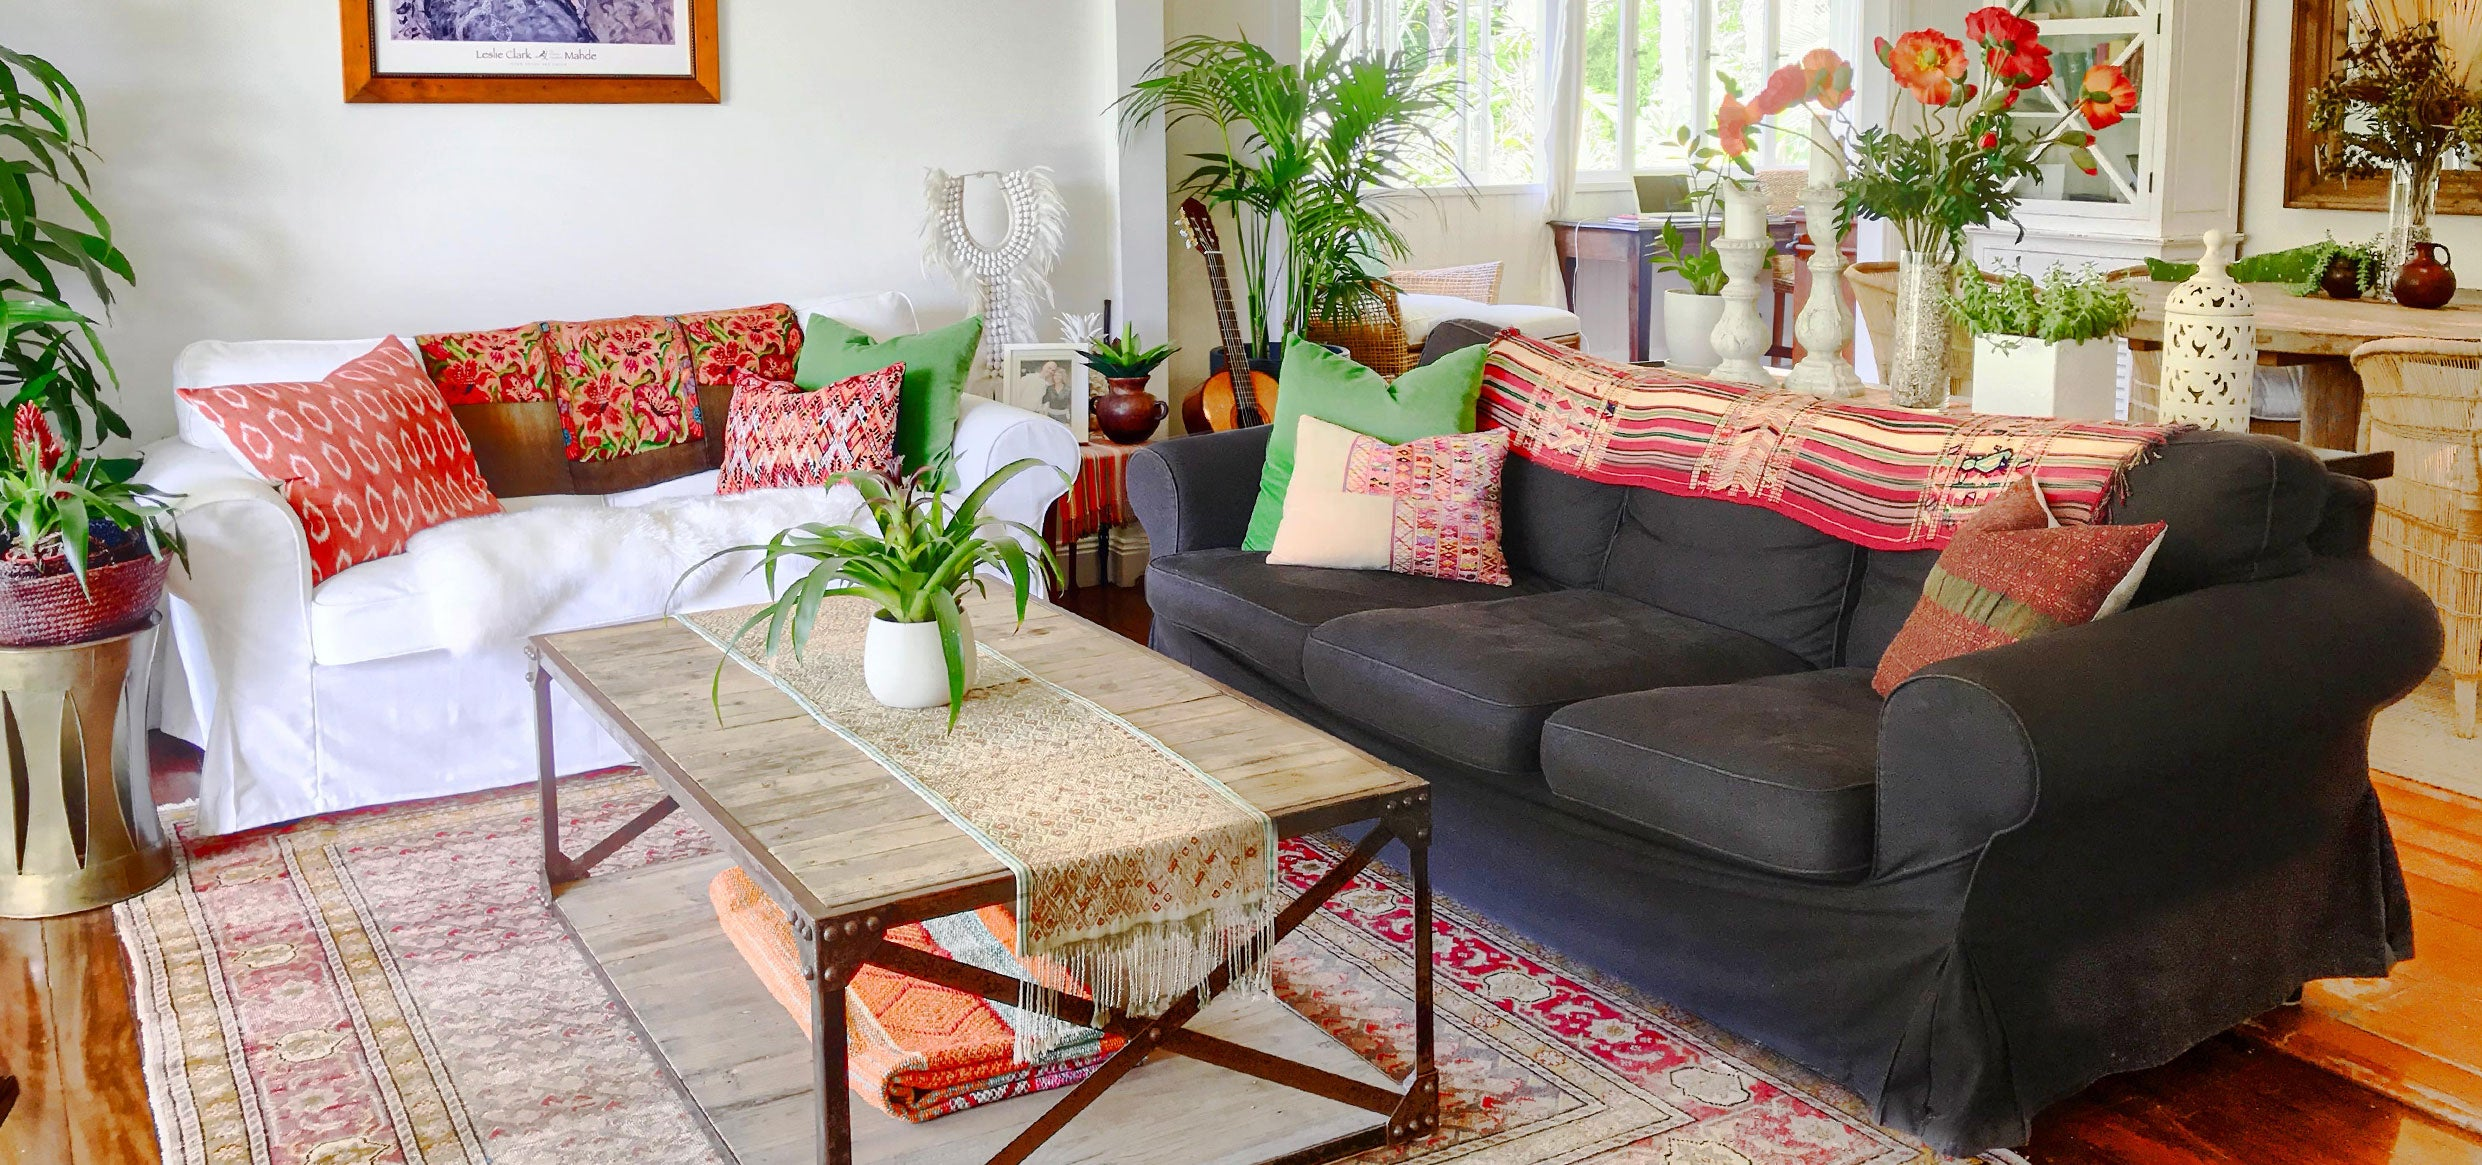 Guatemalan Textiles The Best Designs And Colours For Interior Decor Lamour Artisans